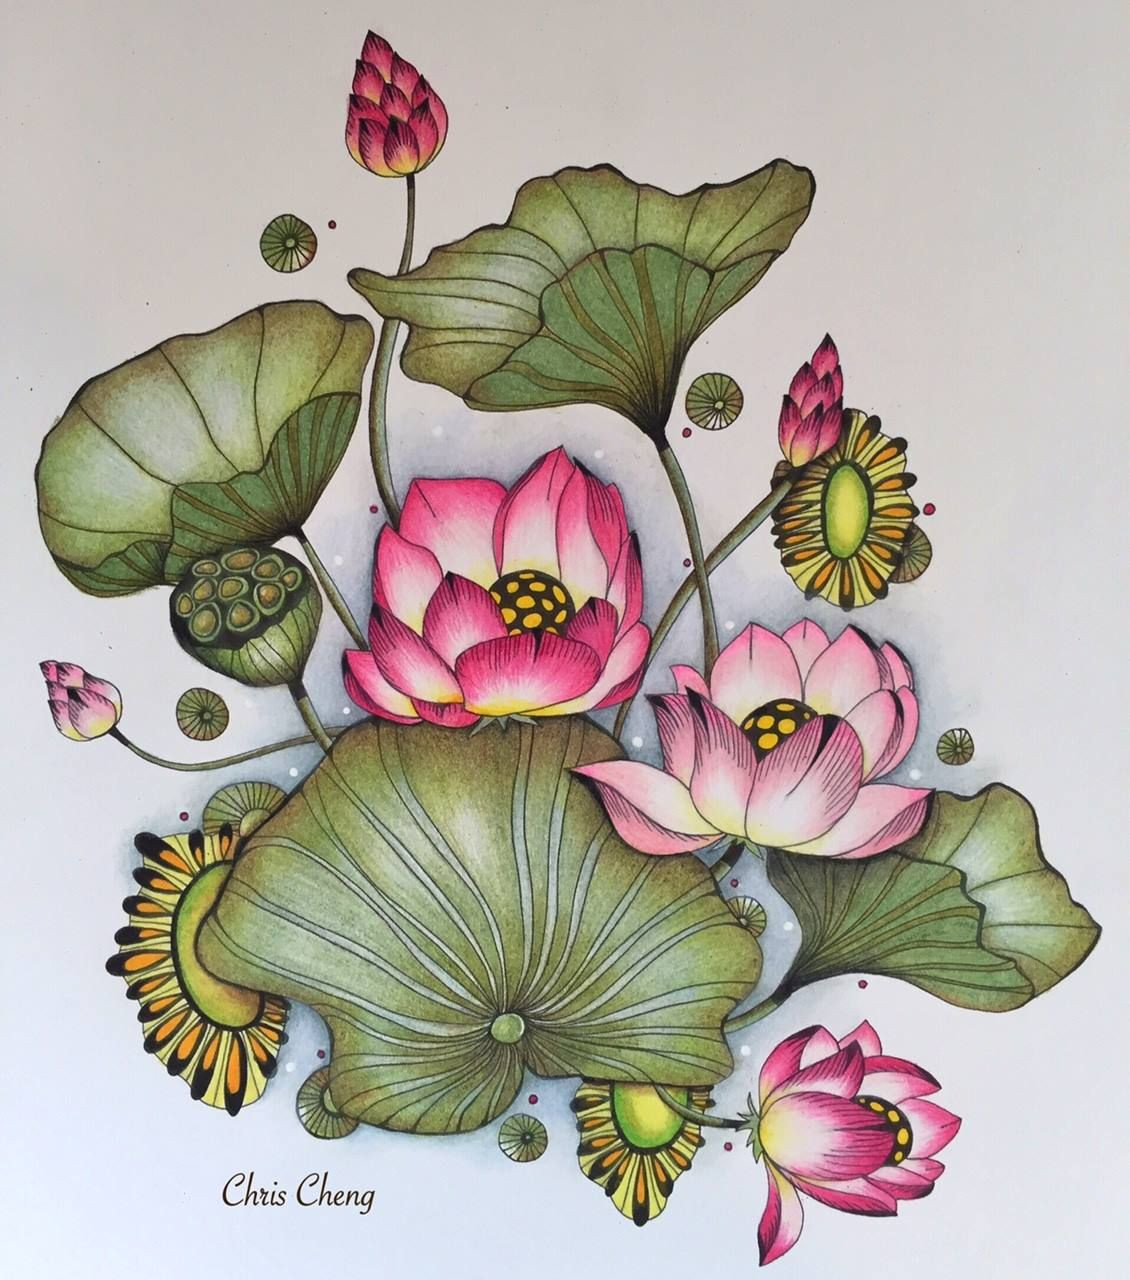 Water lily flower coloring pages - Coloring Book Botanical Wonderland By Rachel Reinert Studio